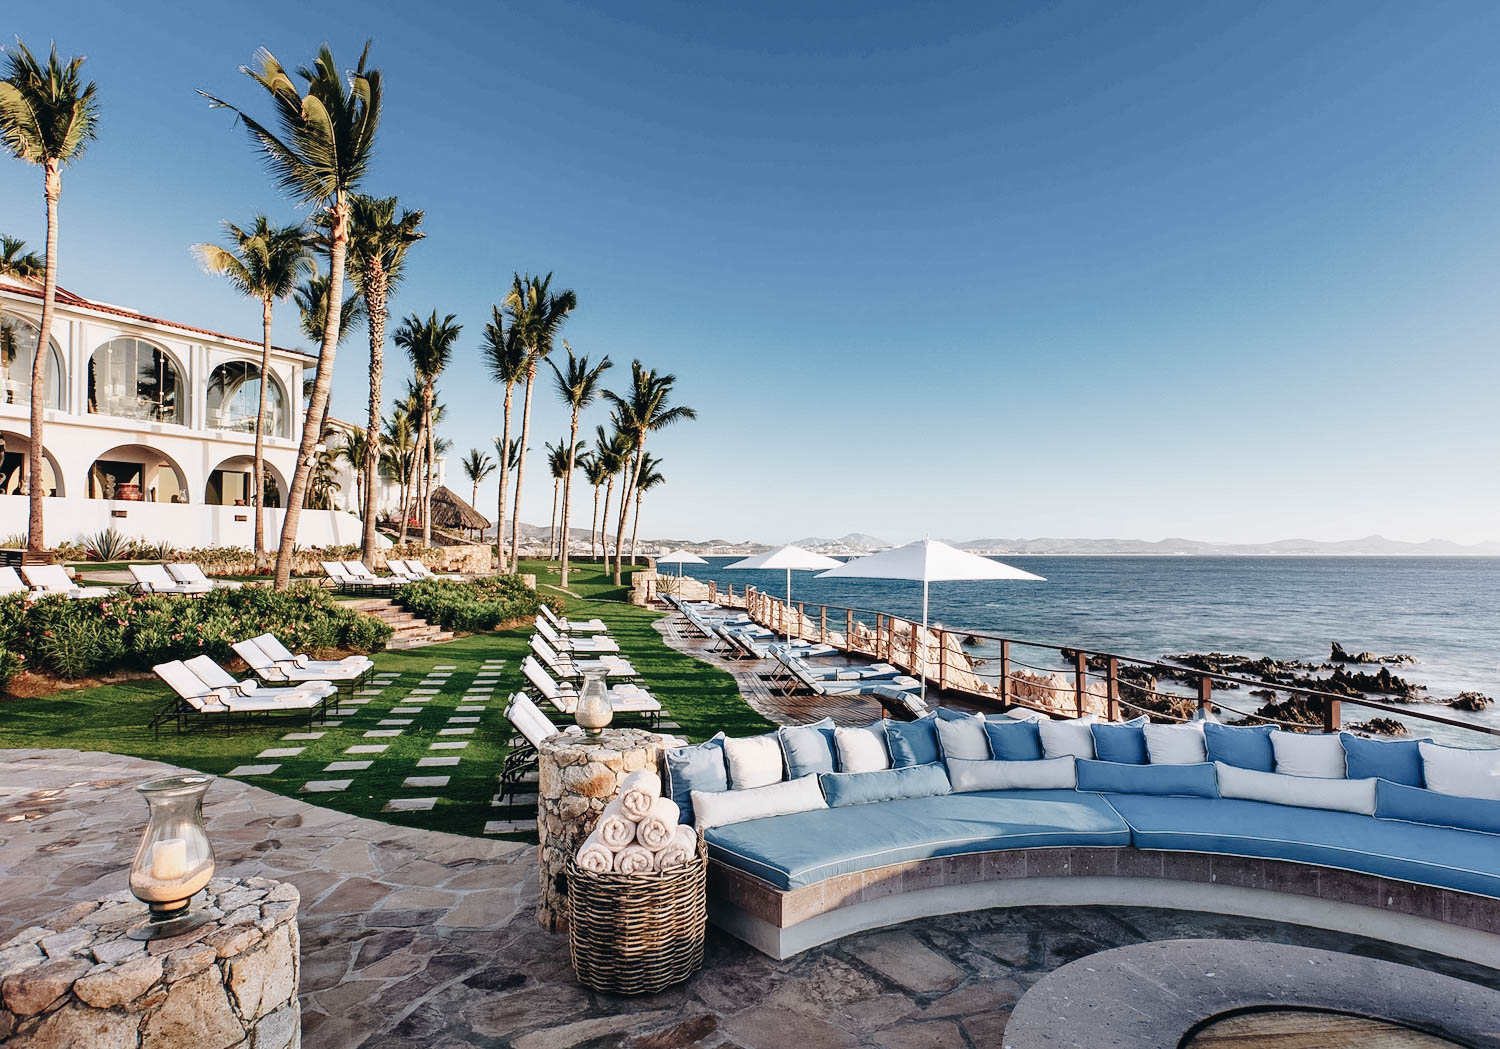 OneAndOnly_Palmilla_PoolsAndBeaches_Pools_VistaPool_002_HR-2048x1432.jpg